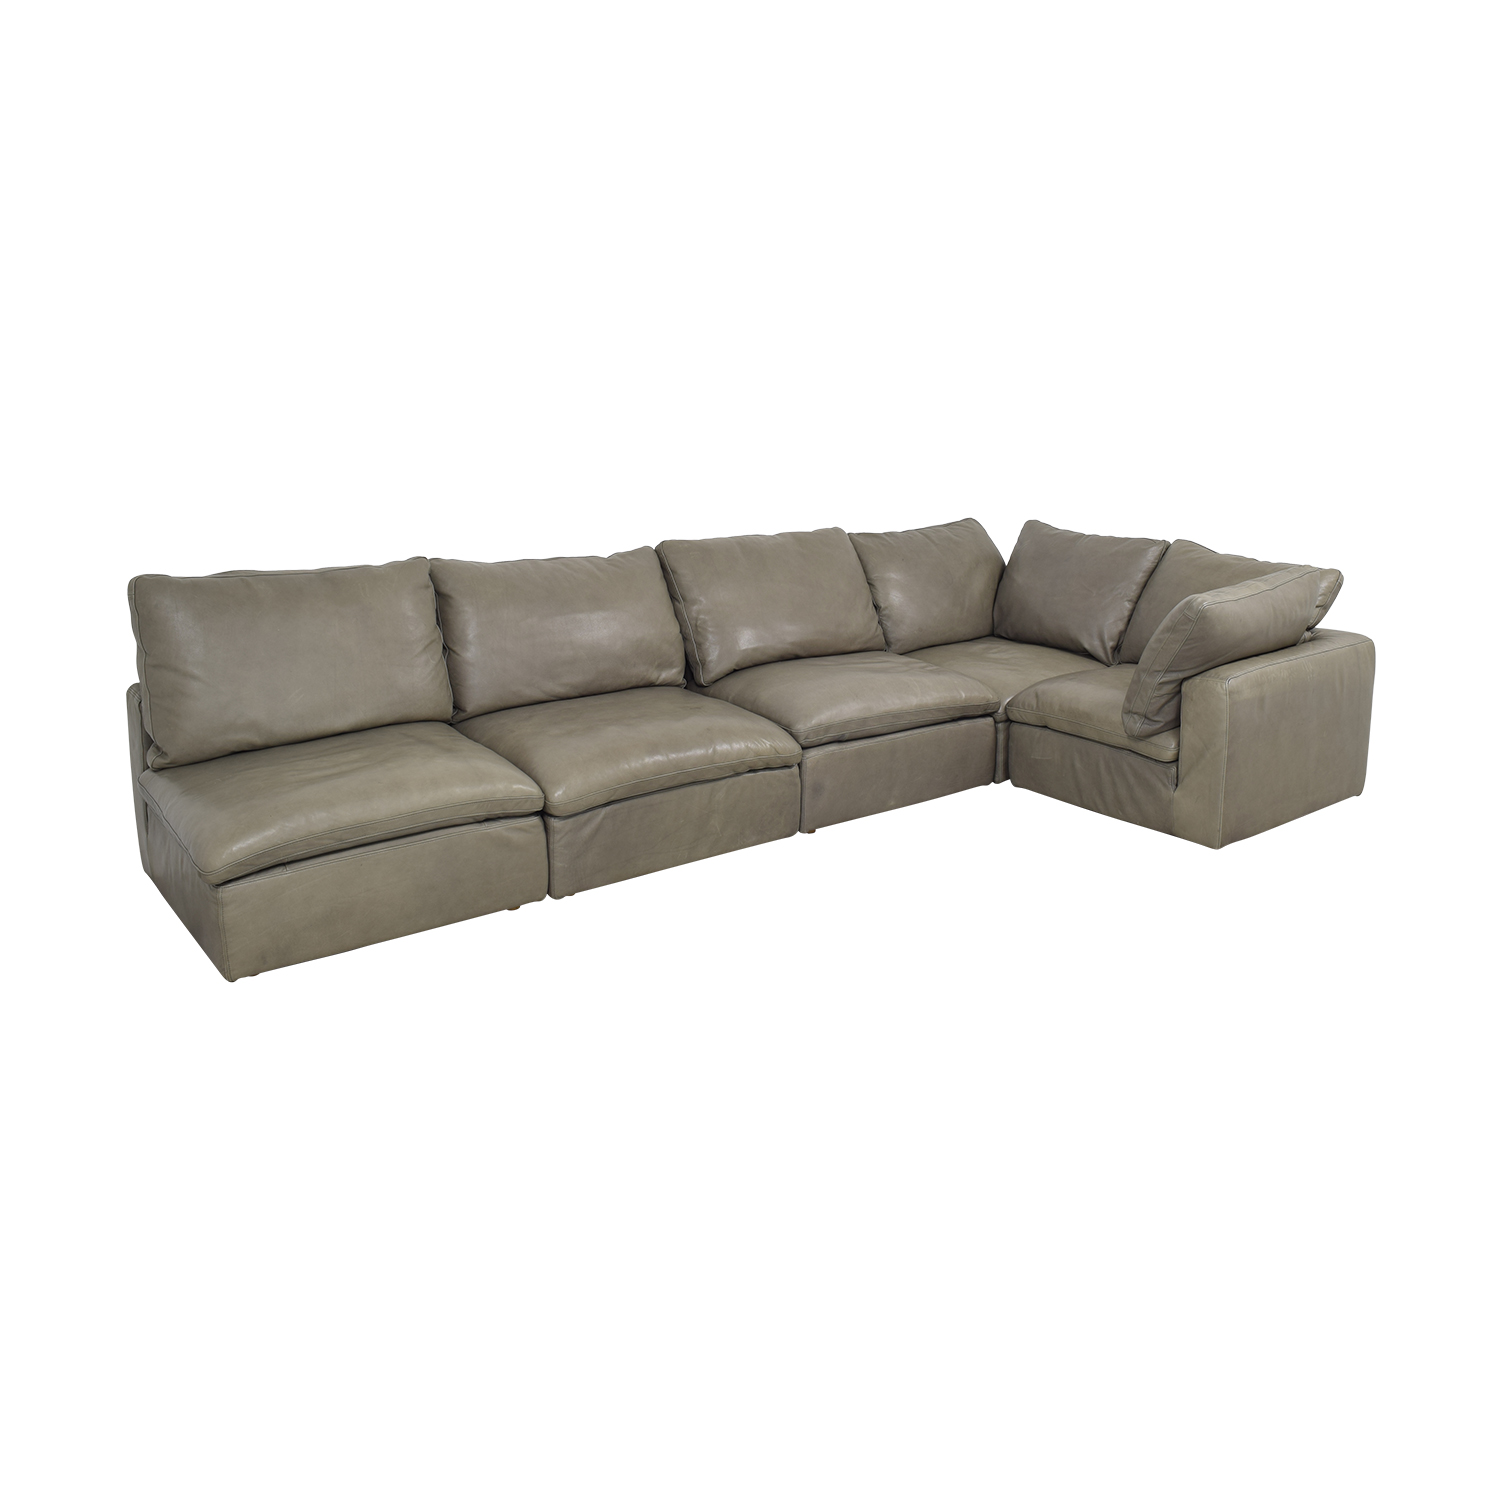 Restoration Hardware Restoration Hardware Cloud Modular Sectional Sofa ct